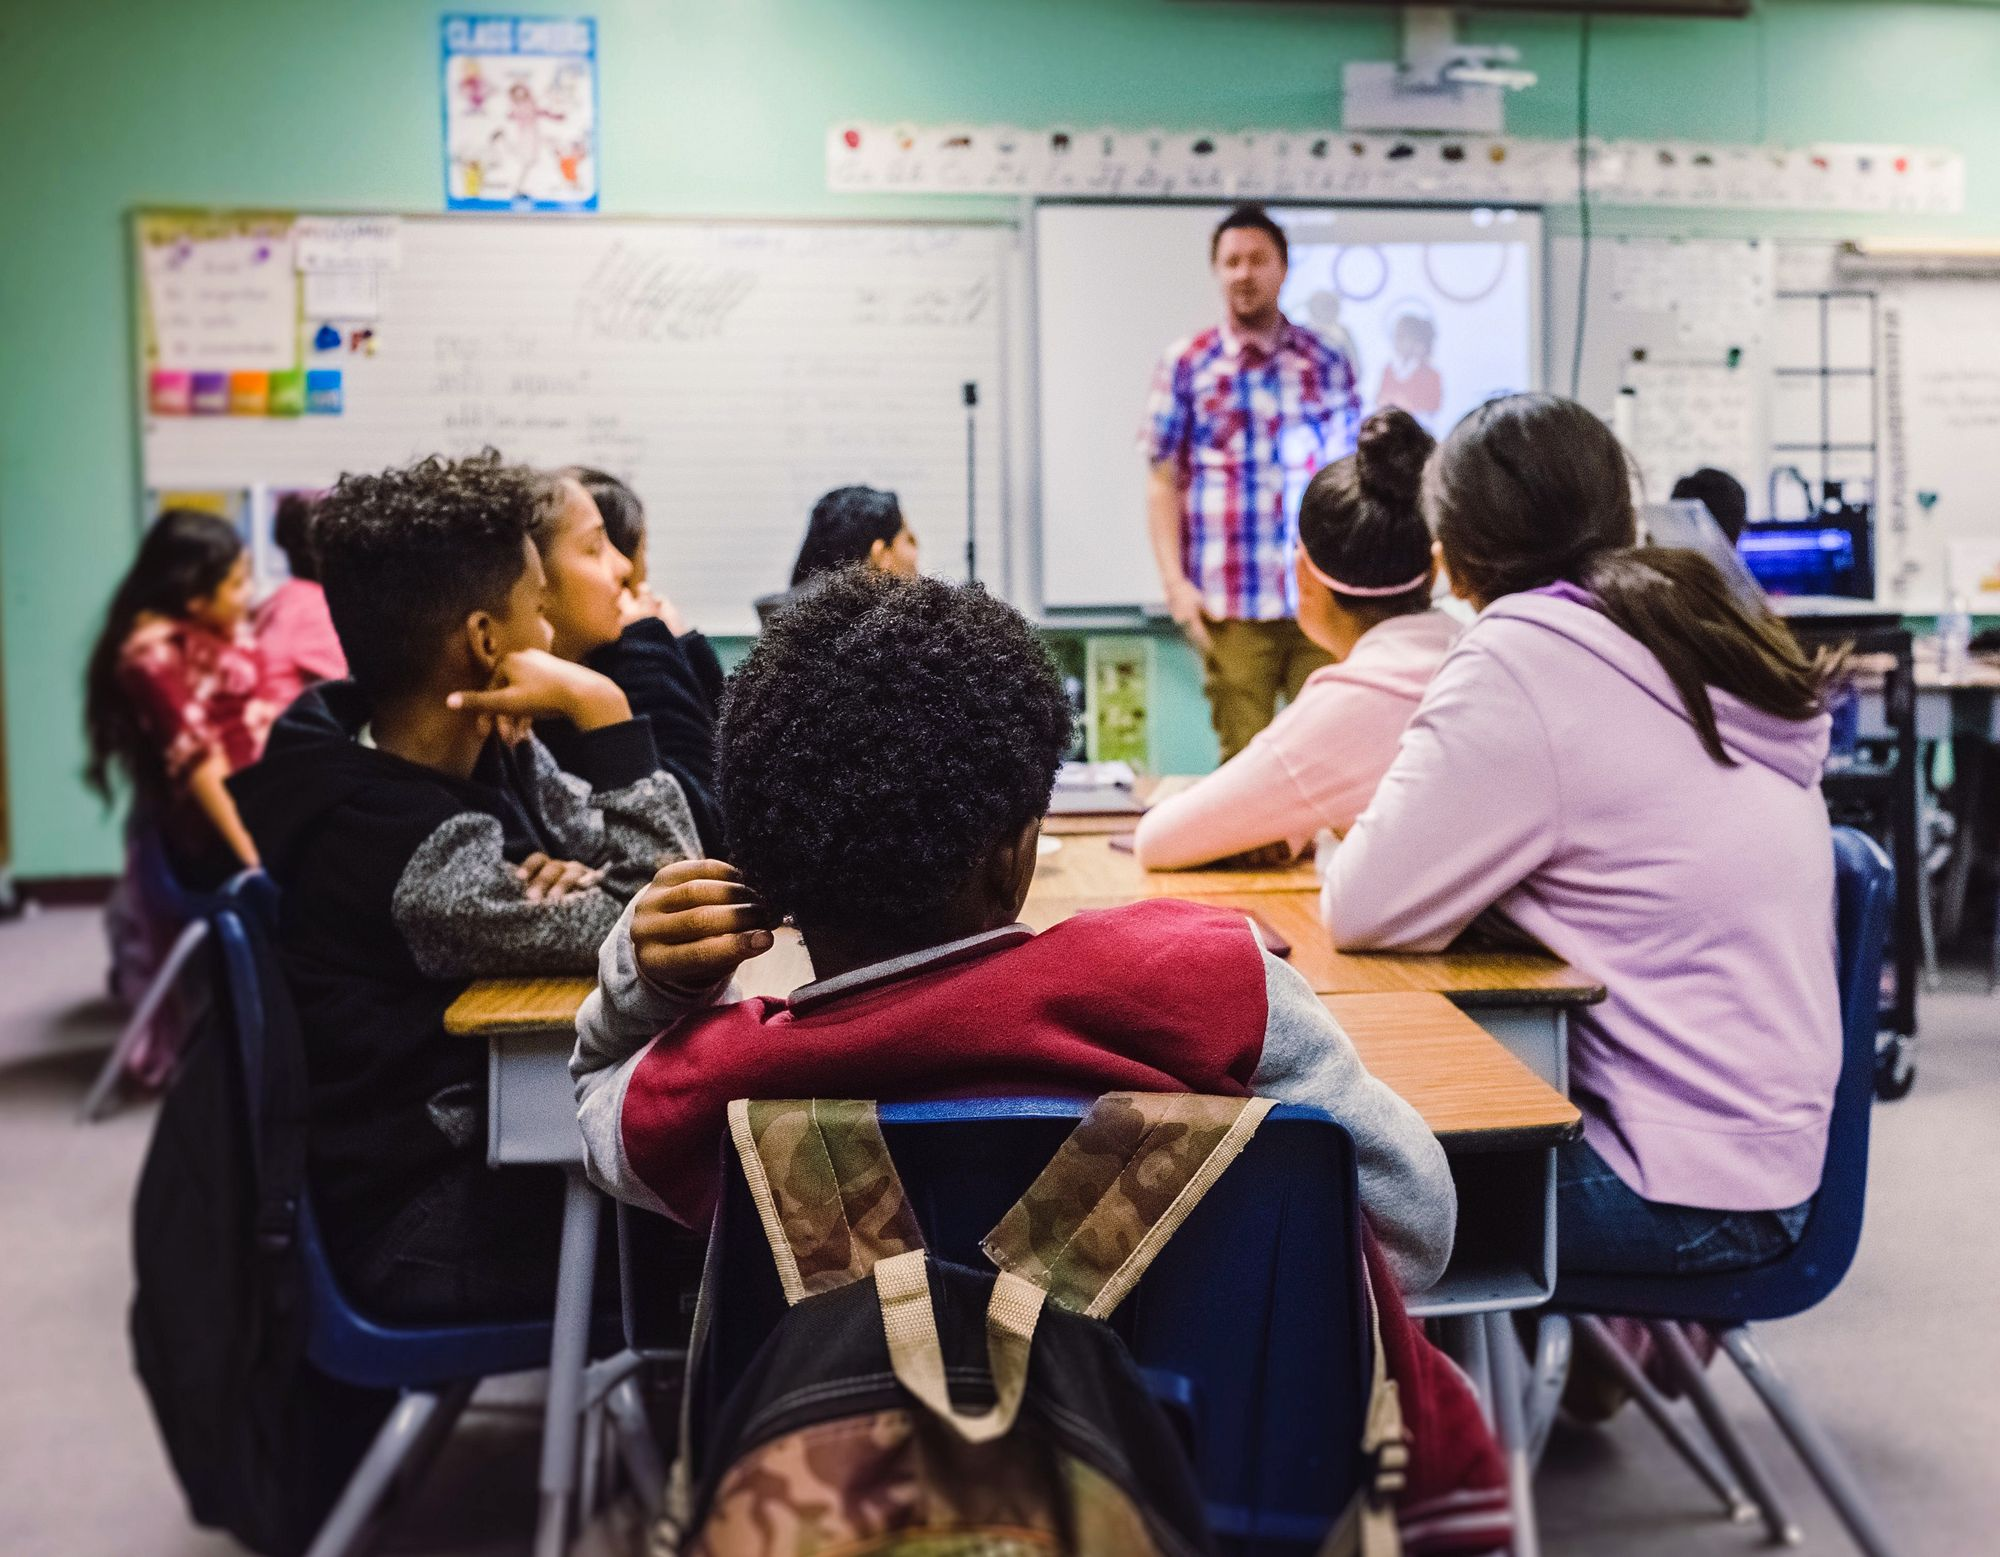 How Barriers to Getting an Education Almost Ruined My Children's Future